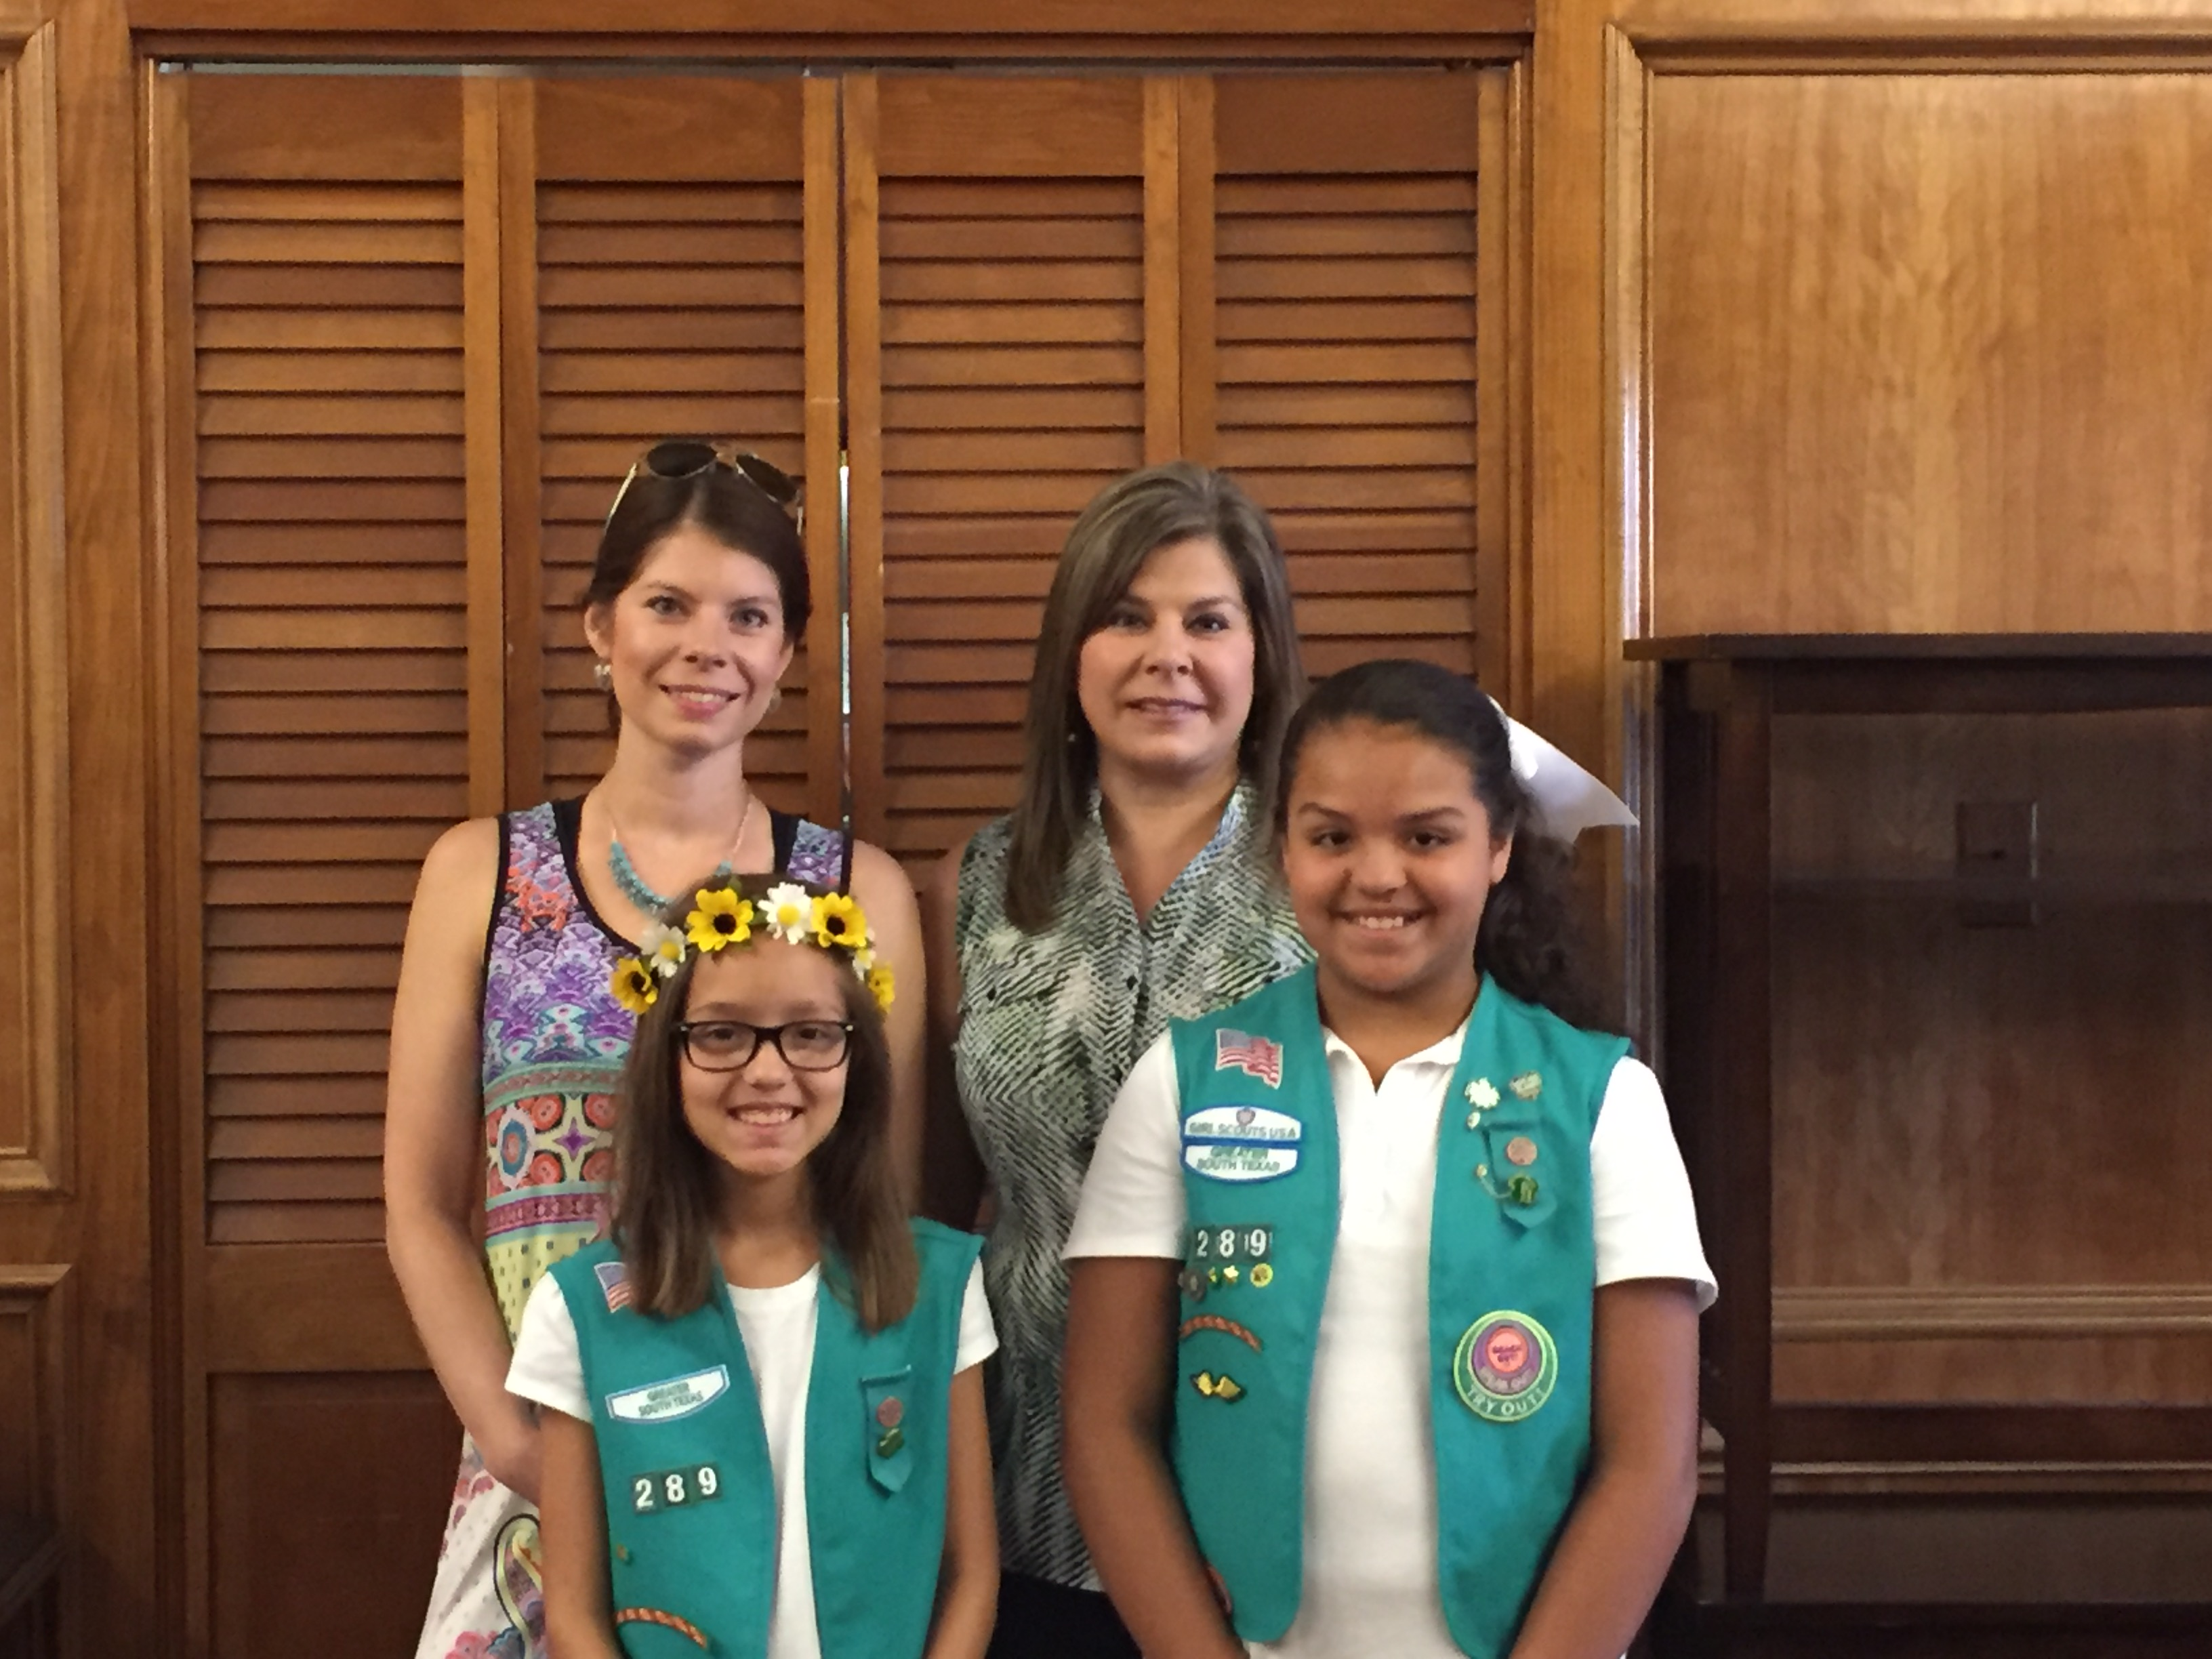 HCISD Girls Scouts collect supplies for emergency children's shelter